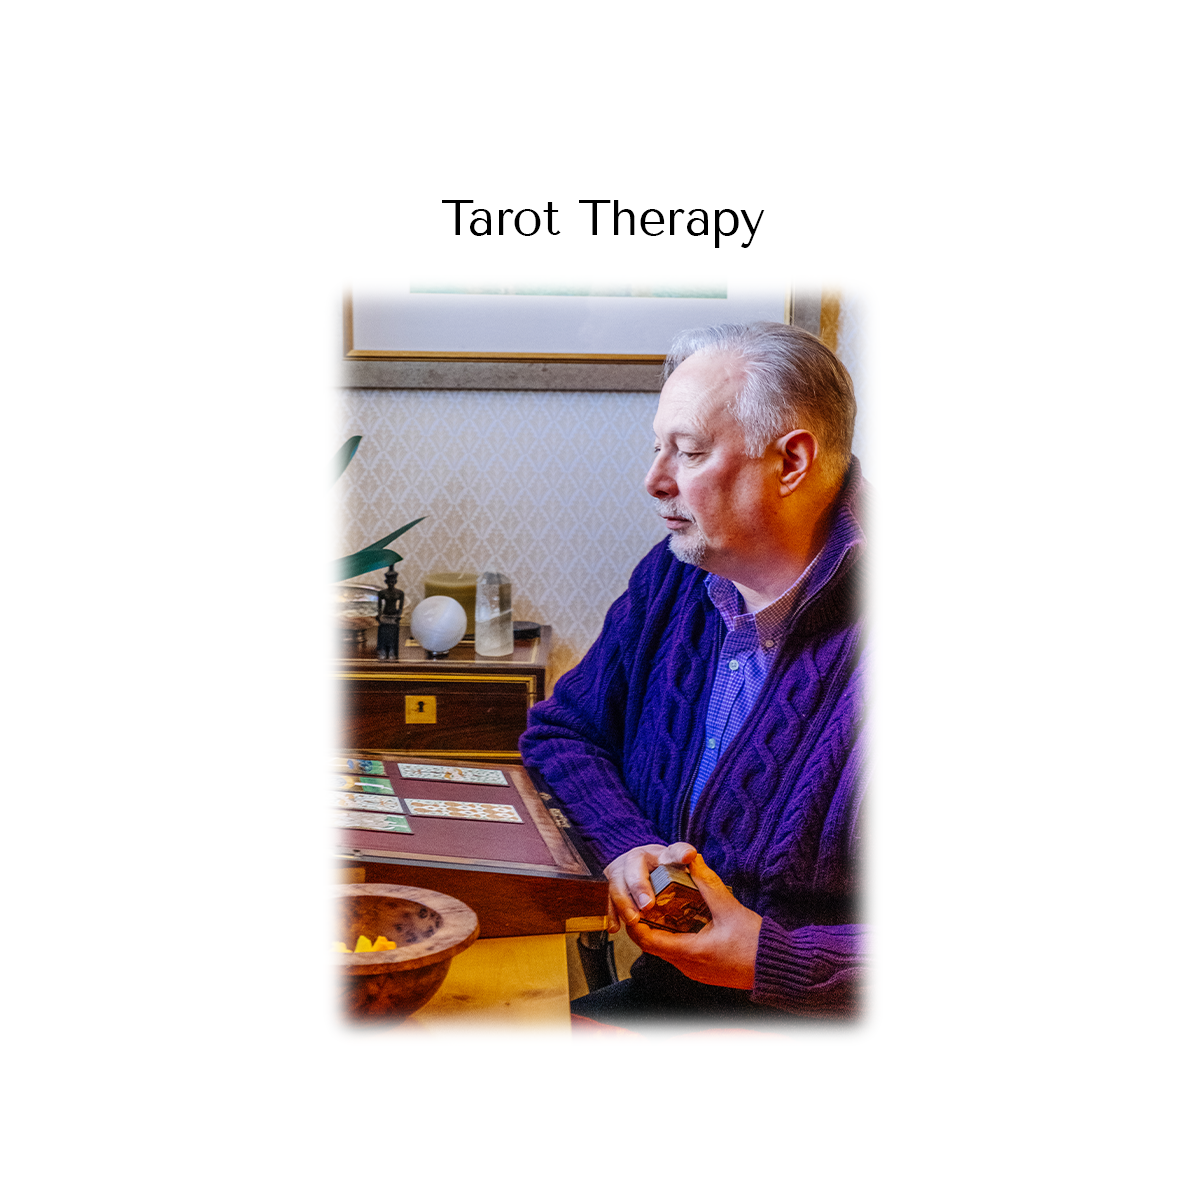 https://www.robertperryhealing.com/wp-content/uploads/2021/05/Produst-image-Tarot-Therapy-2.0.png